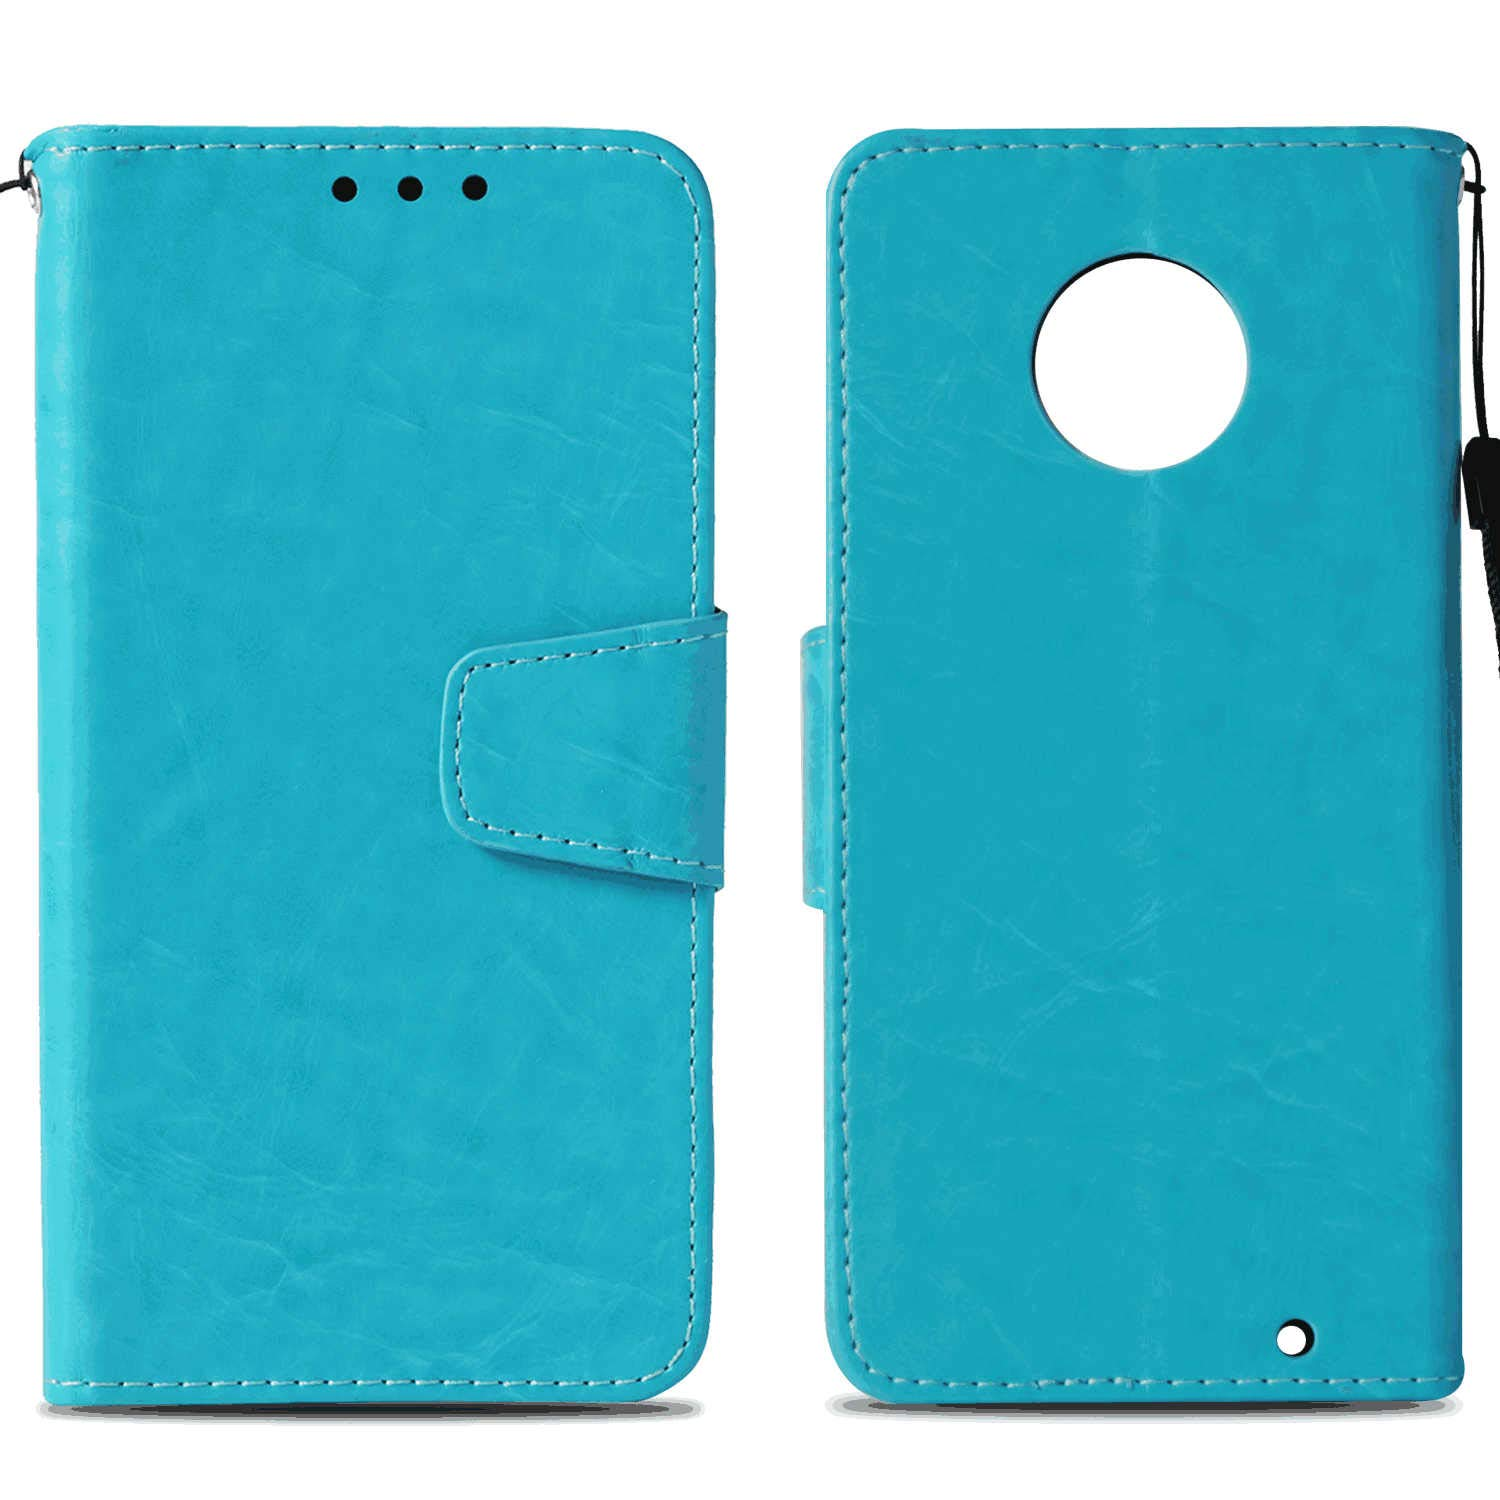 Samsung Galaxy Note8 Flip Case Cover for Samsung Galaxy Note8 Leather Card Holders Wallet case Luxury Business Kickstand with Free Waterproof-Bag